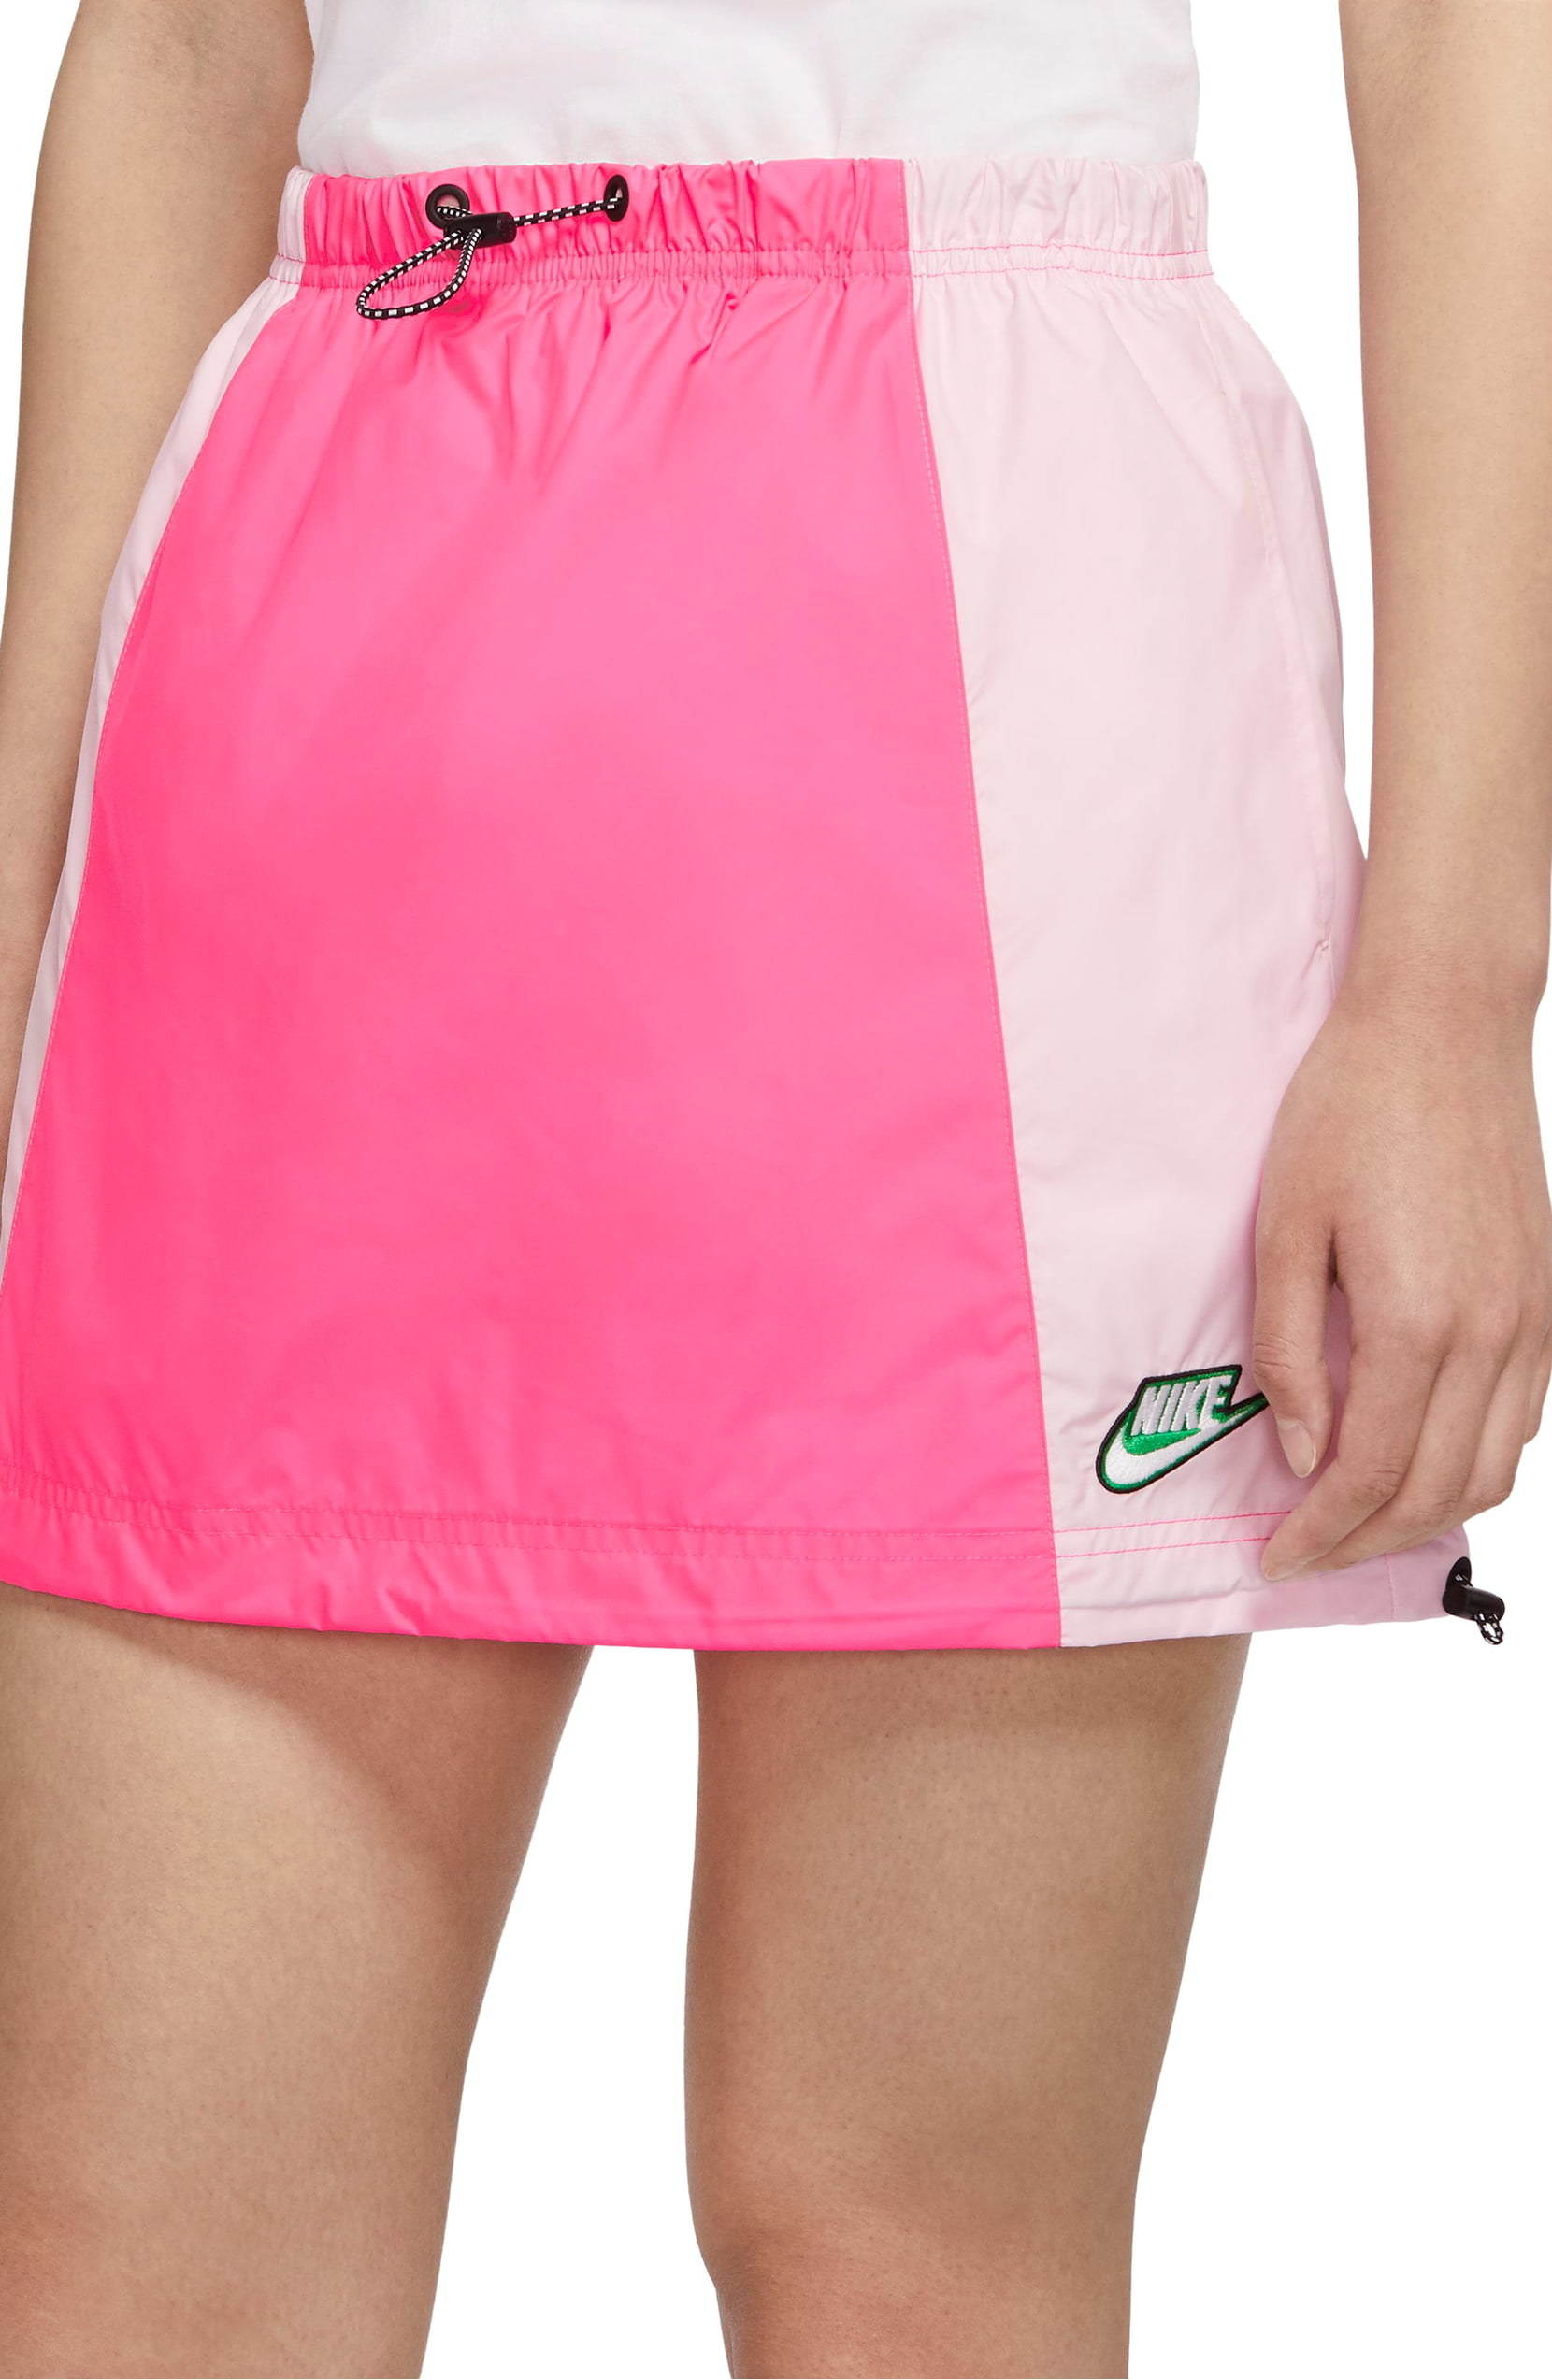 Model wearing Sportswear Icon Clash Colorblock drawstring skirt by Nike in hyper pink colorway